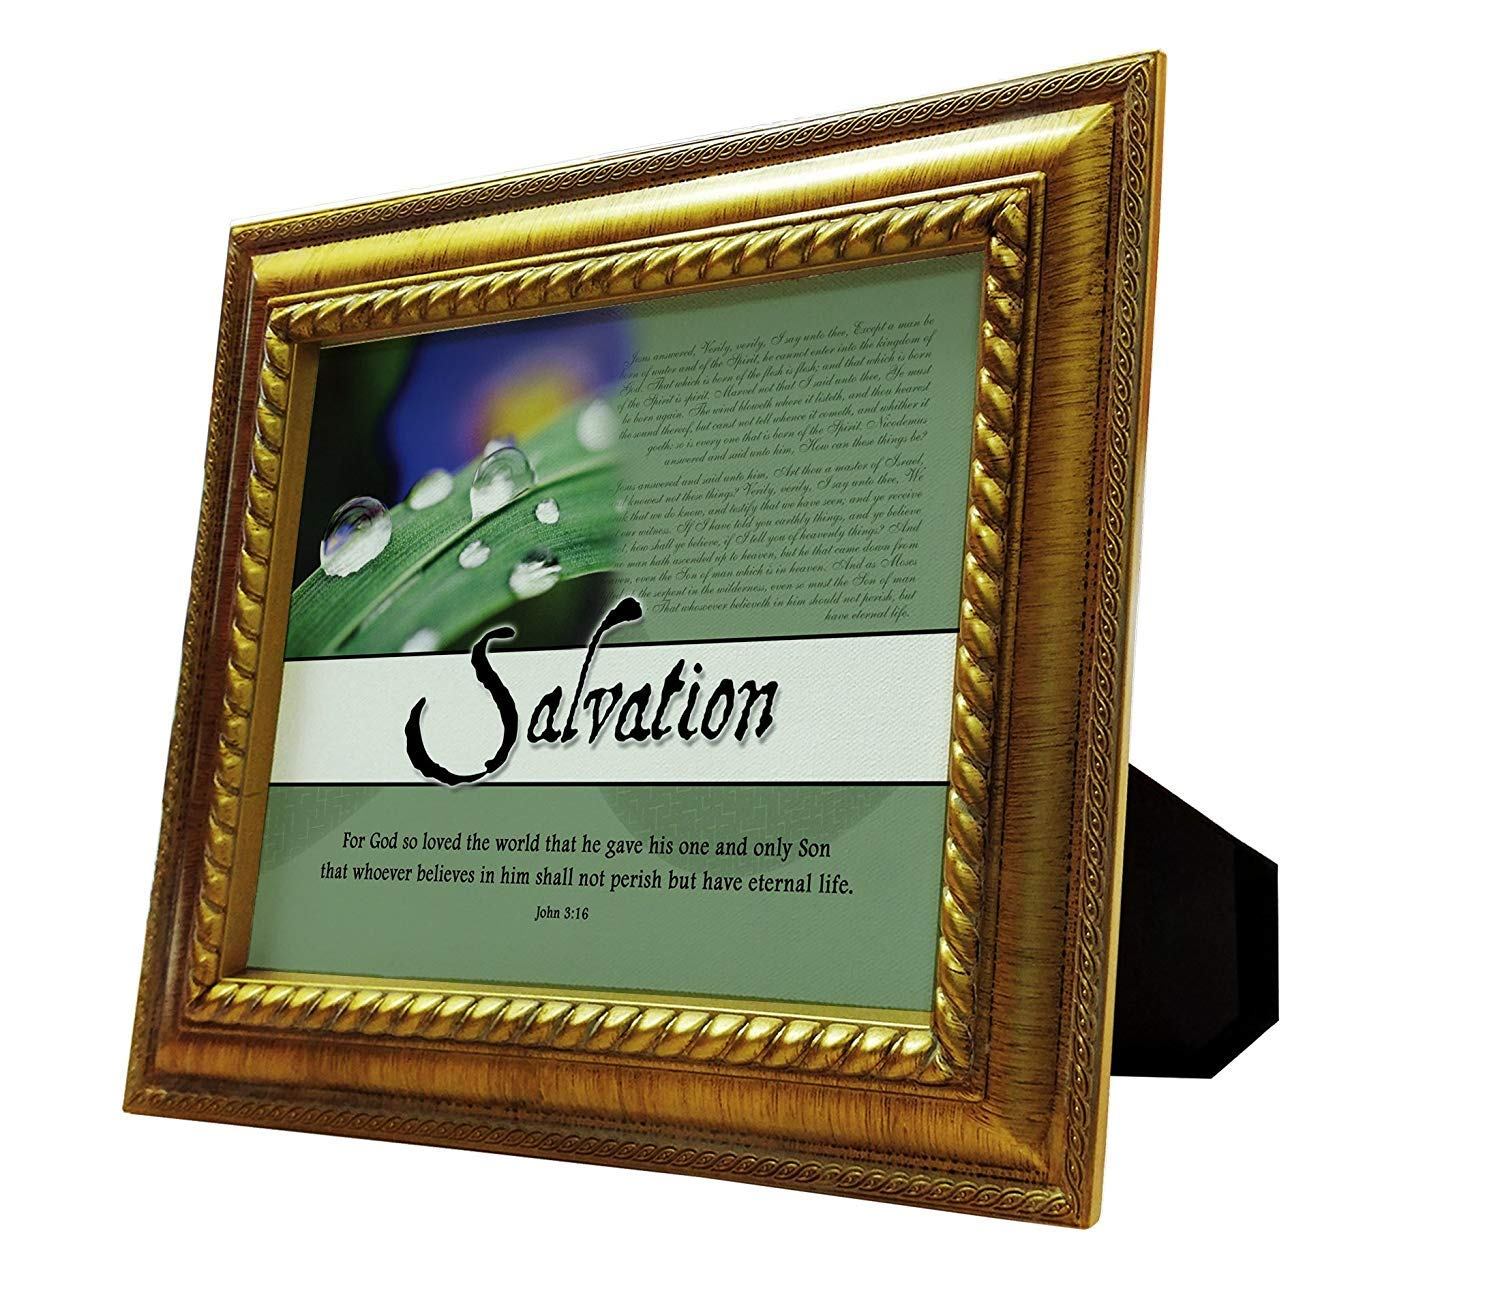 VERSERIES Baptism & Salvation Picture Frame   Canvas Photo Frame Bible Verse Christian Gift and Art   Suitable for Display Desk, Home, Office, Lounge, Tabletop Decor (Rustic Gold Frame, Set of 1)